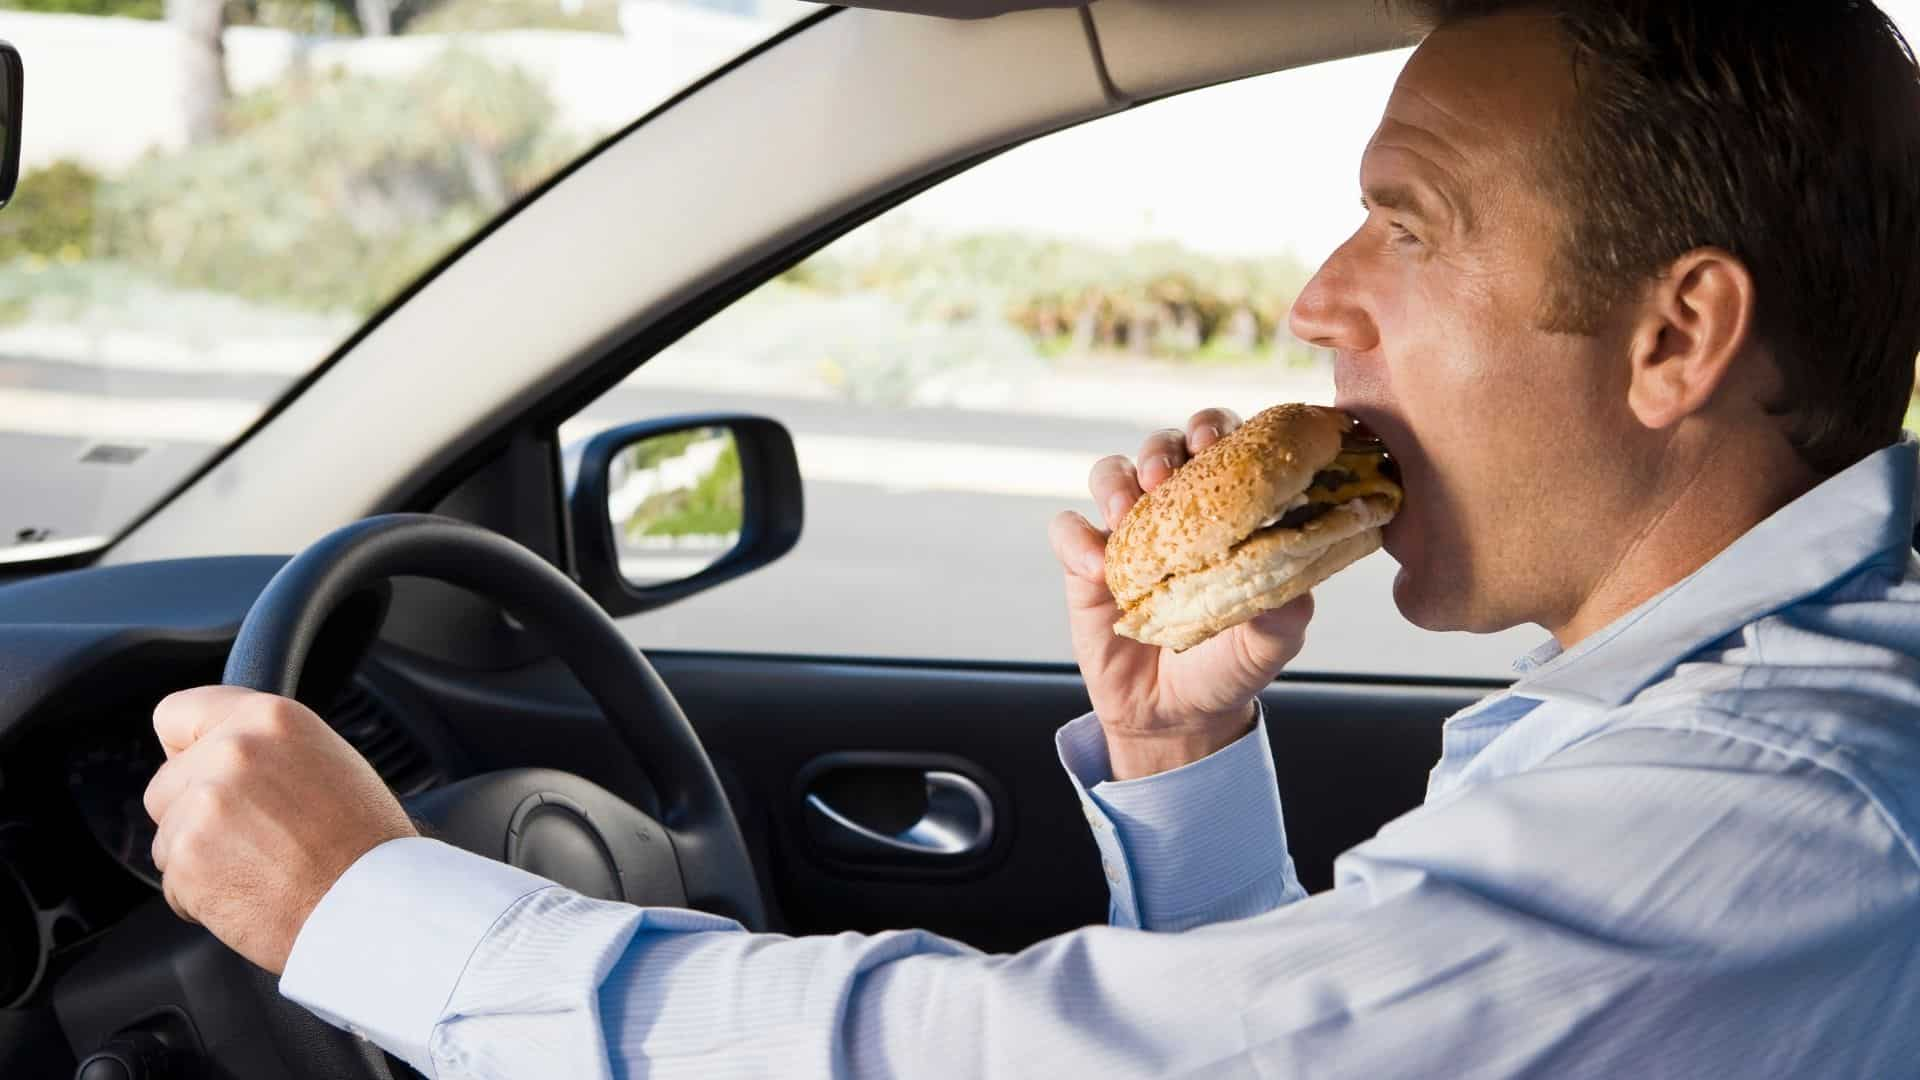 Is it illegal to eat while driving in Australia?